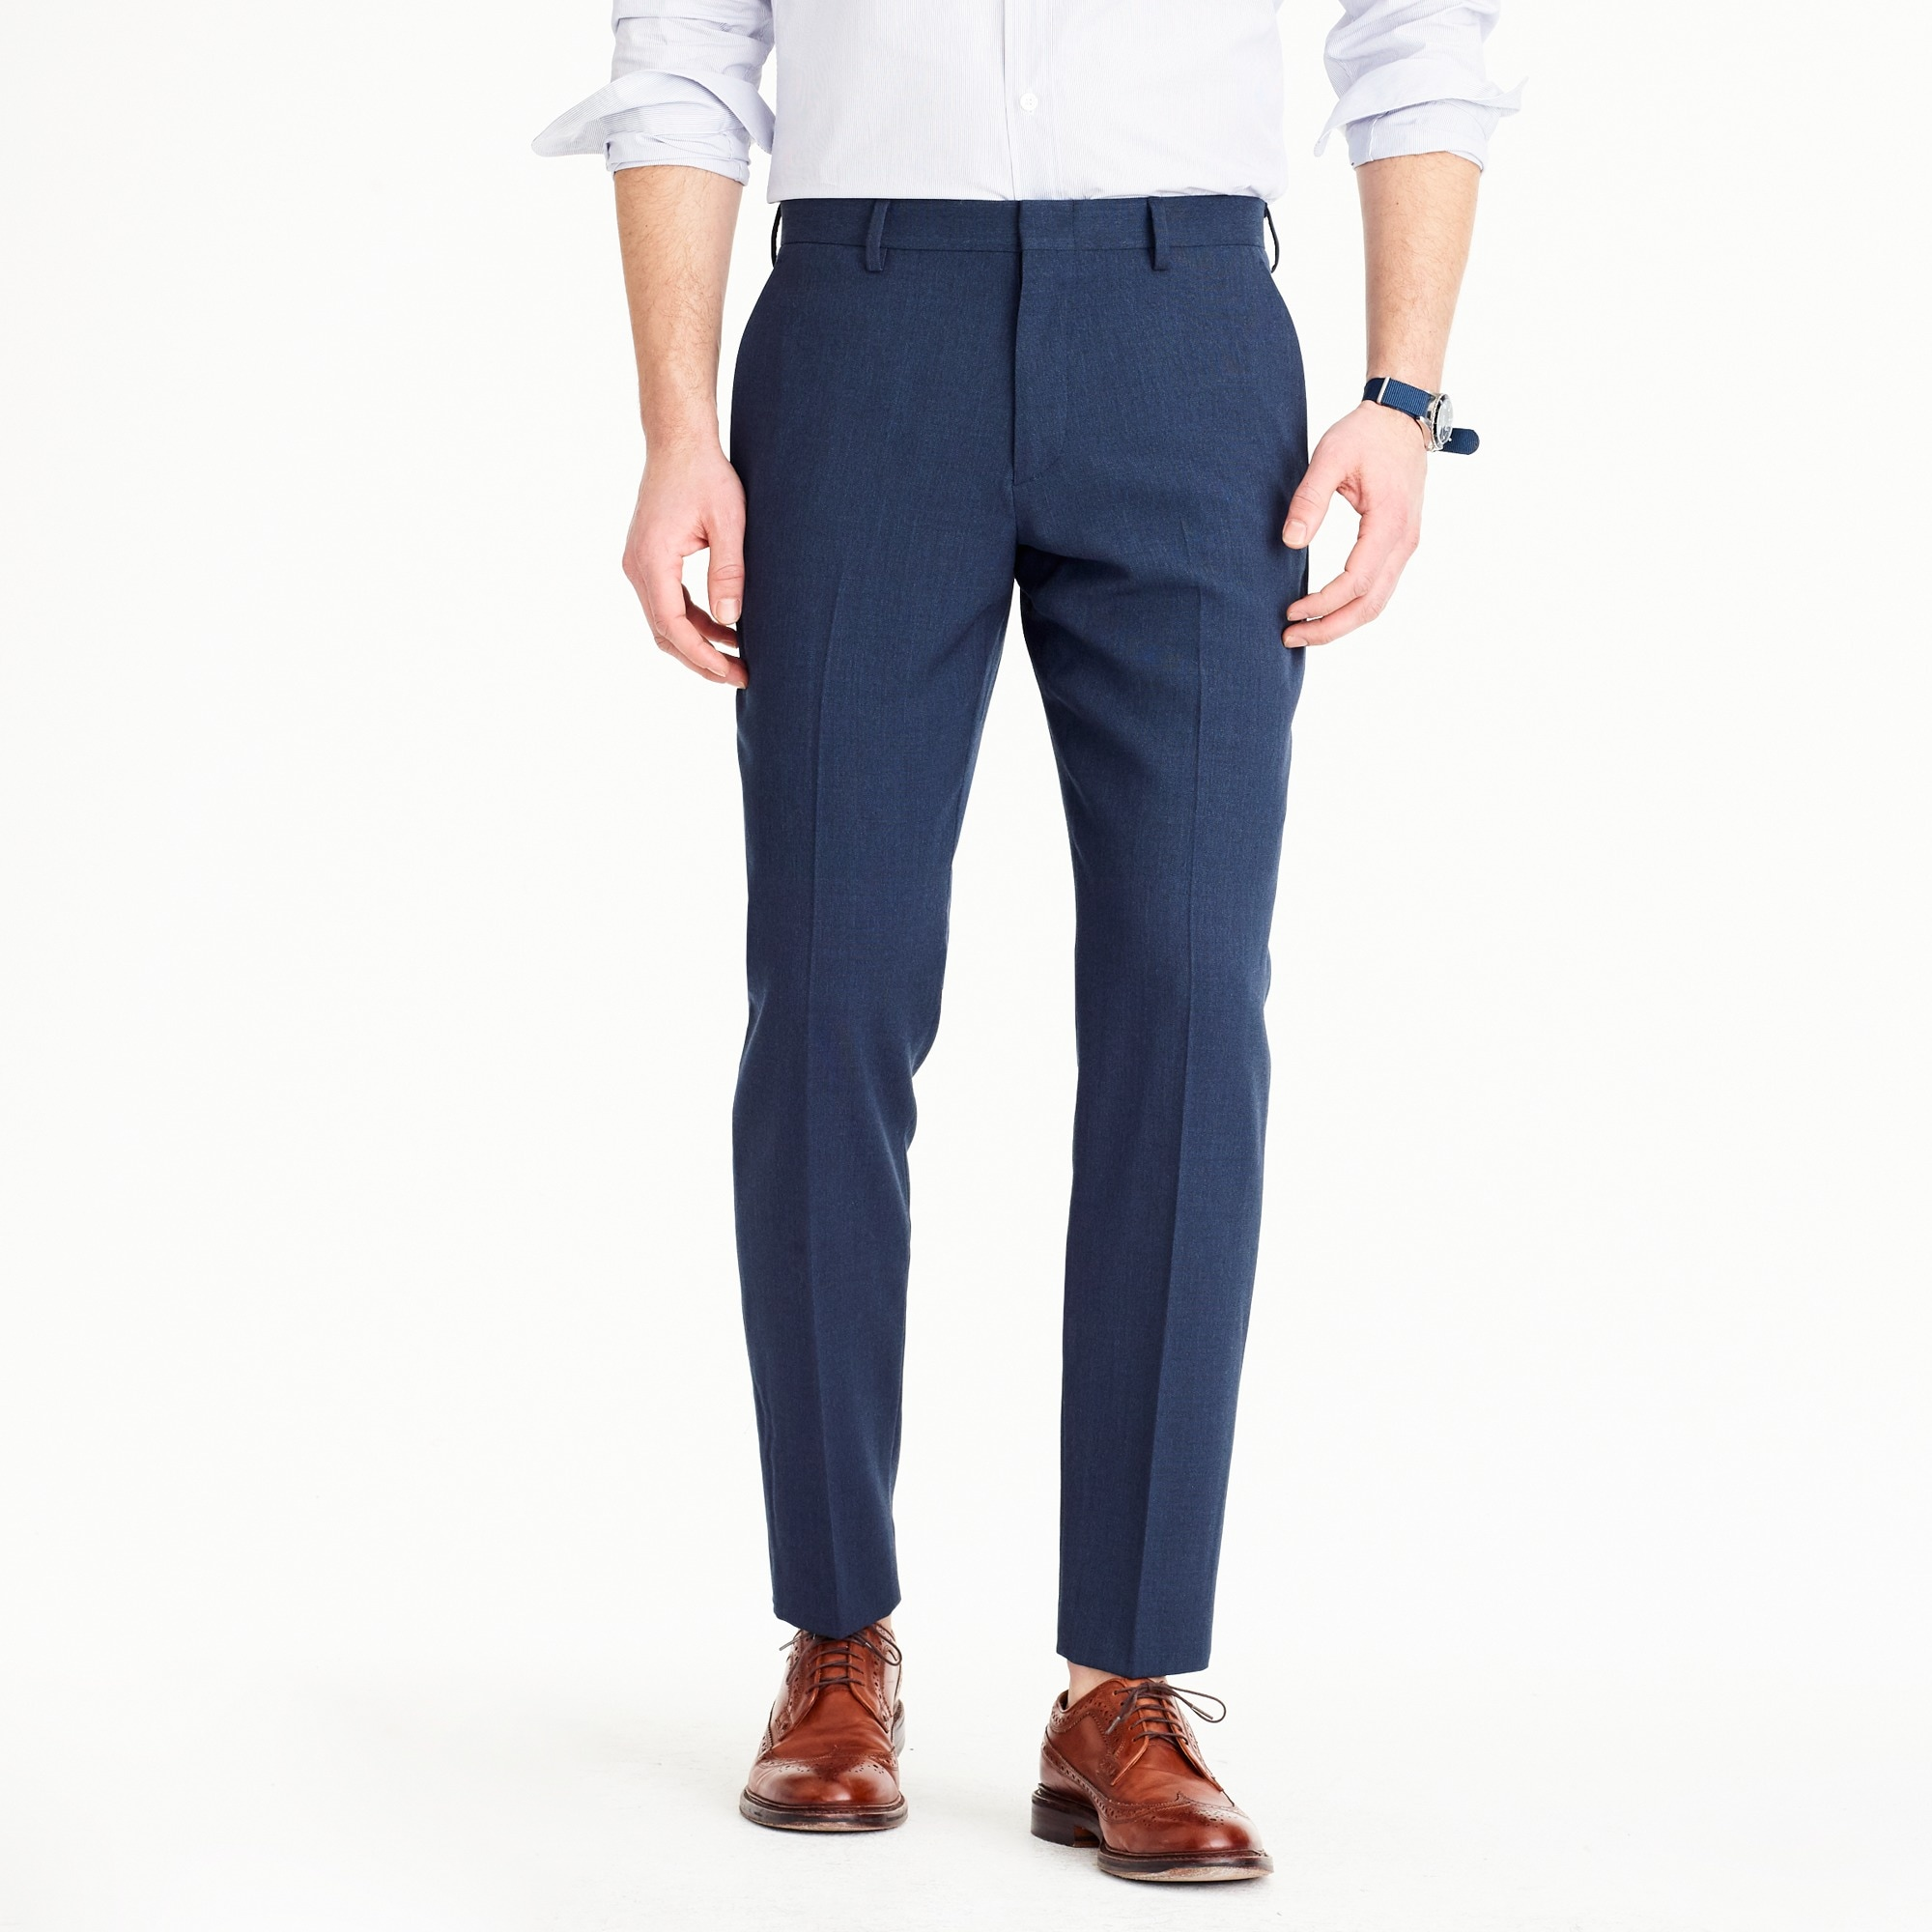 Ludlow Traveler suit pant in Italian wool men pants c